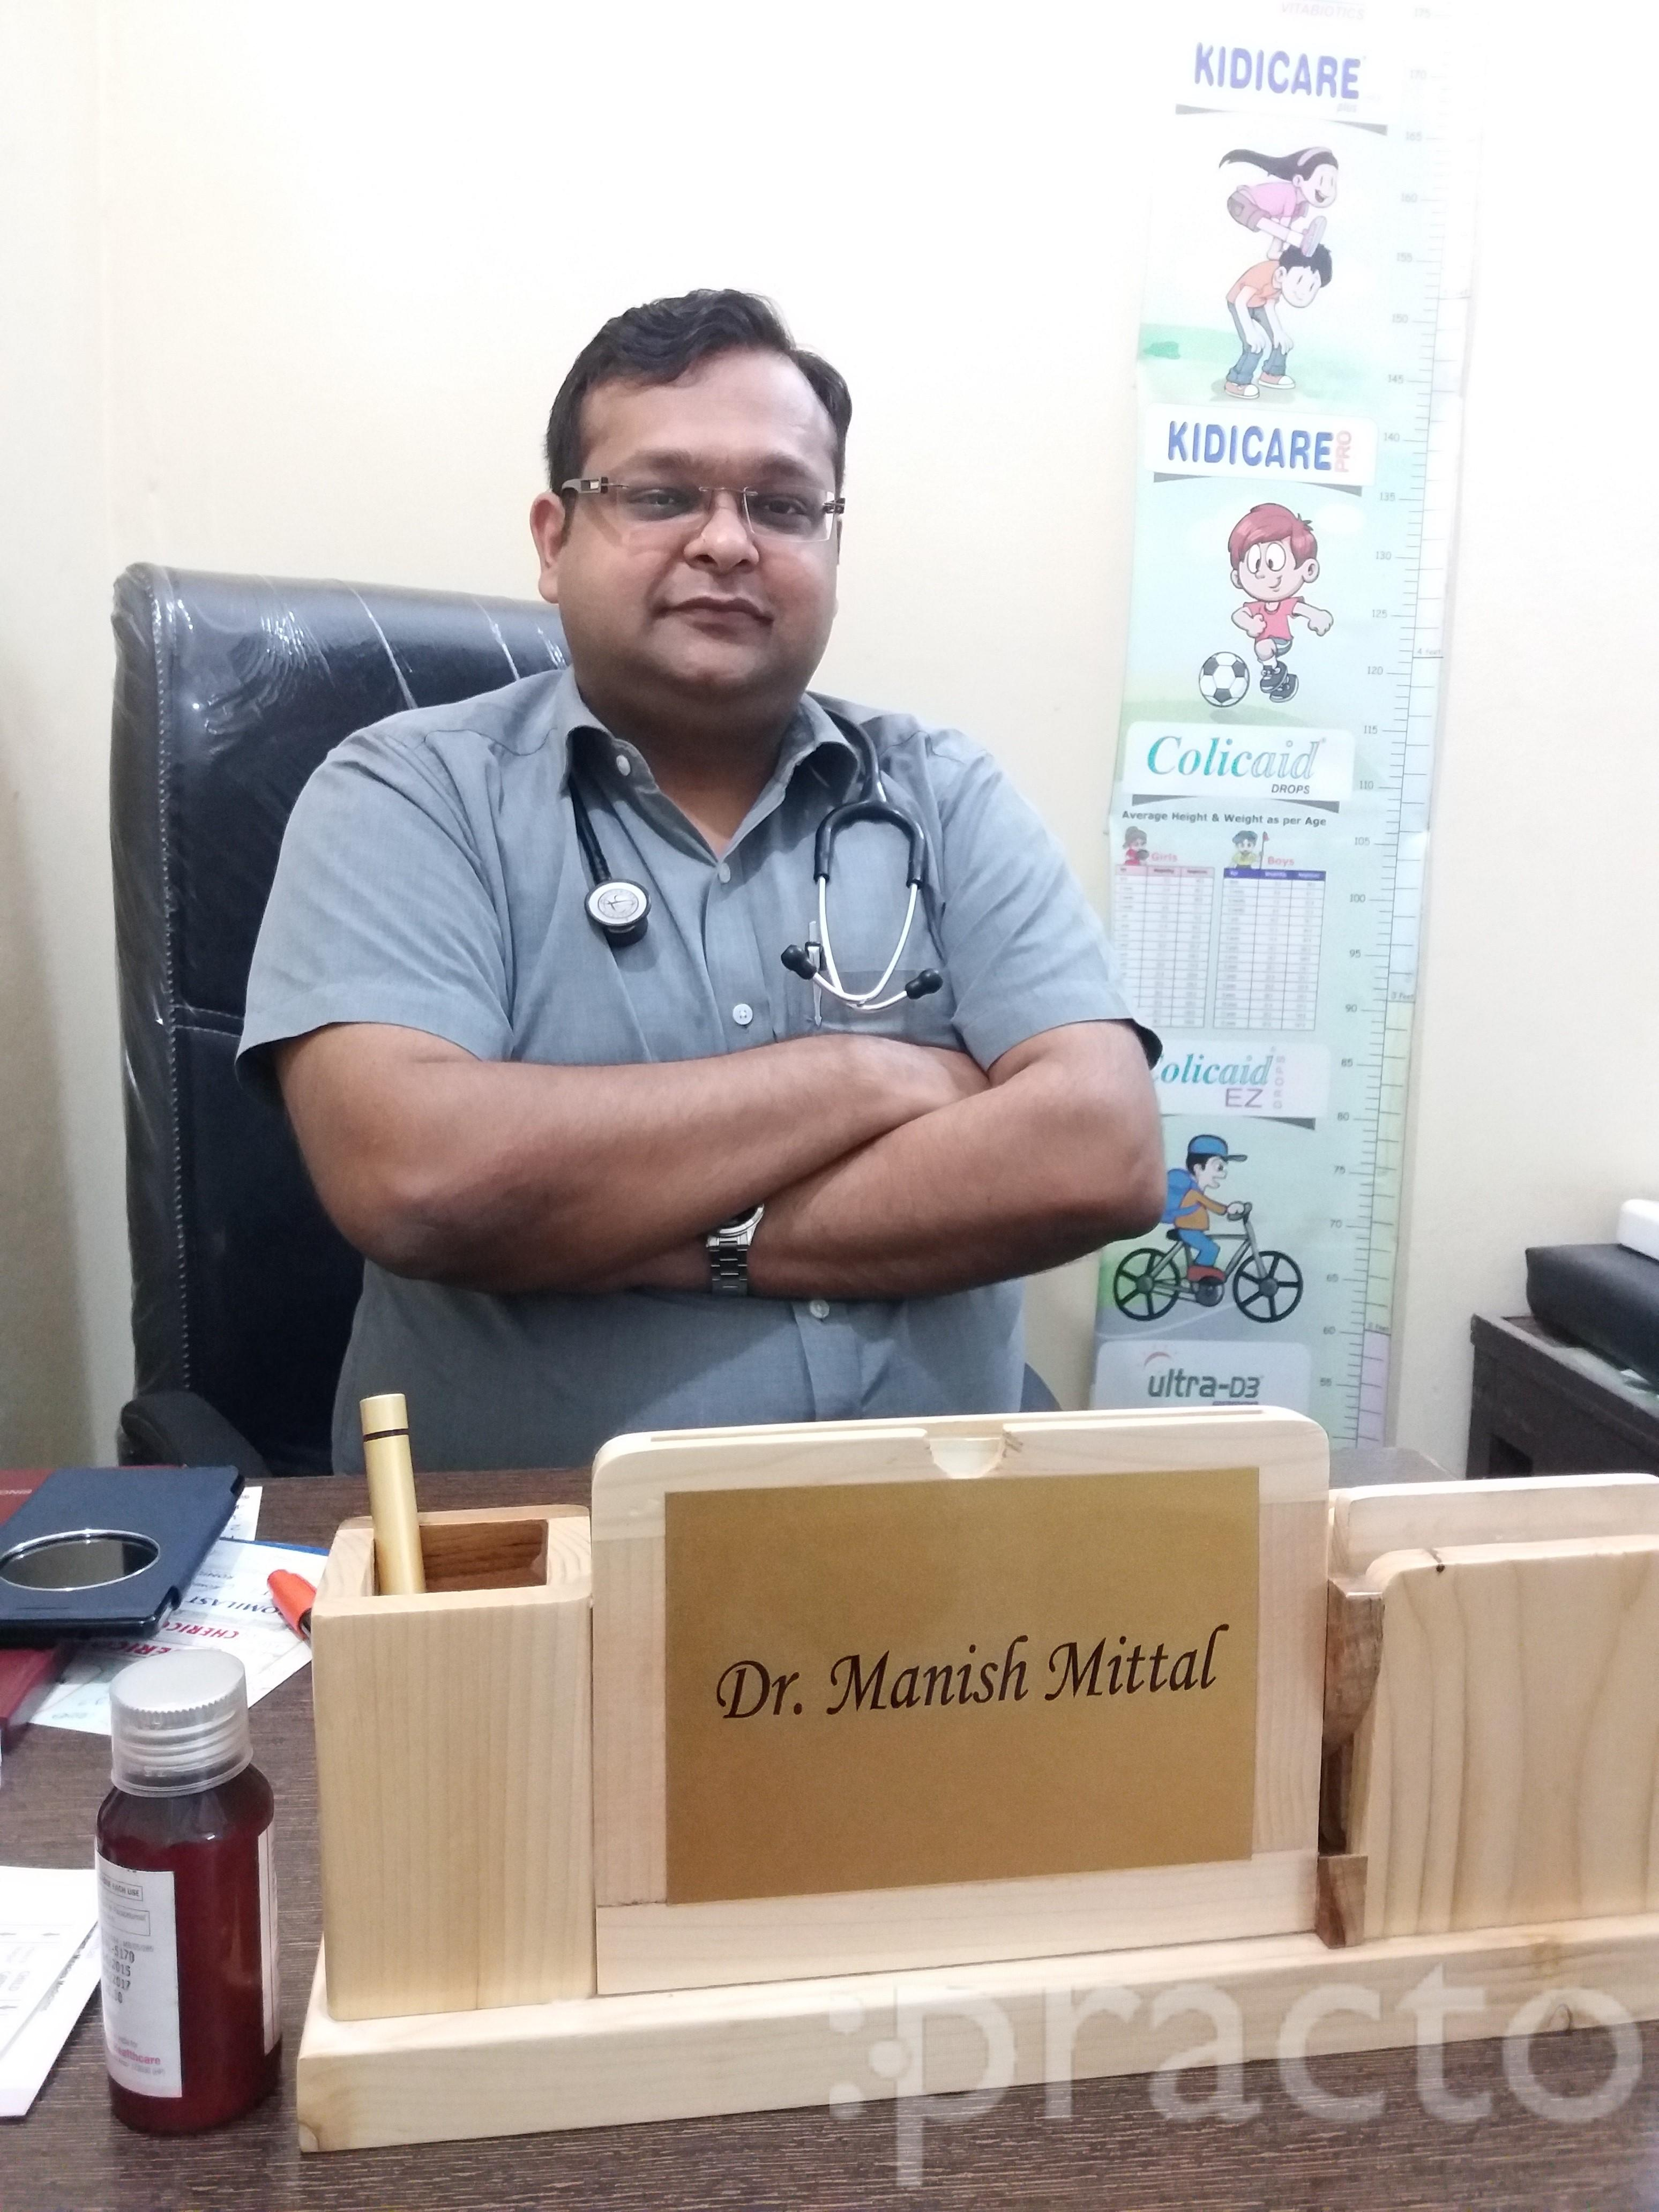 Dr. Manish Mittal - Pediatrician